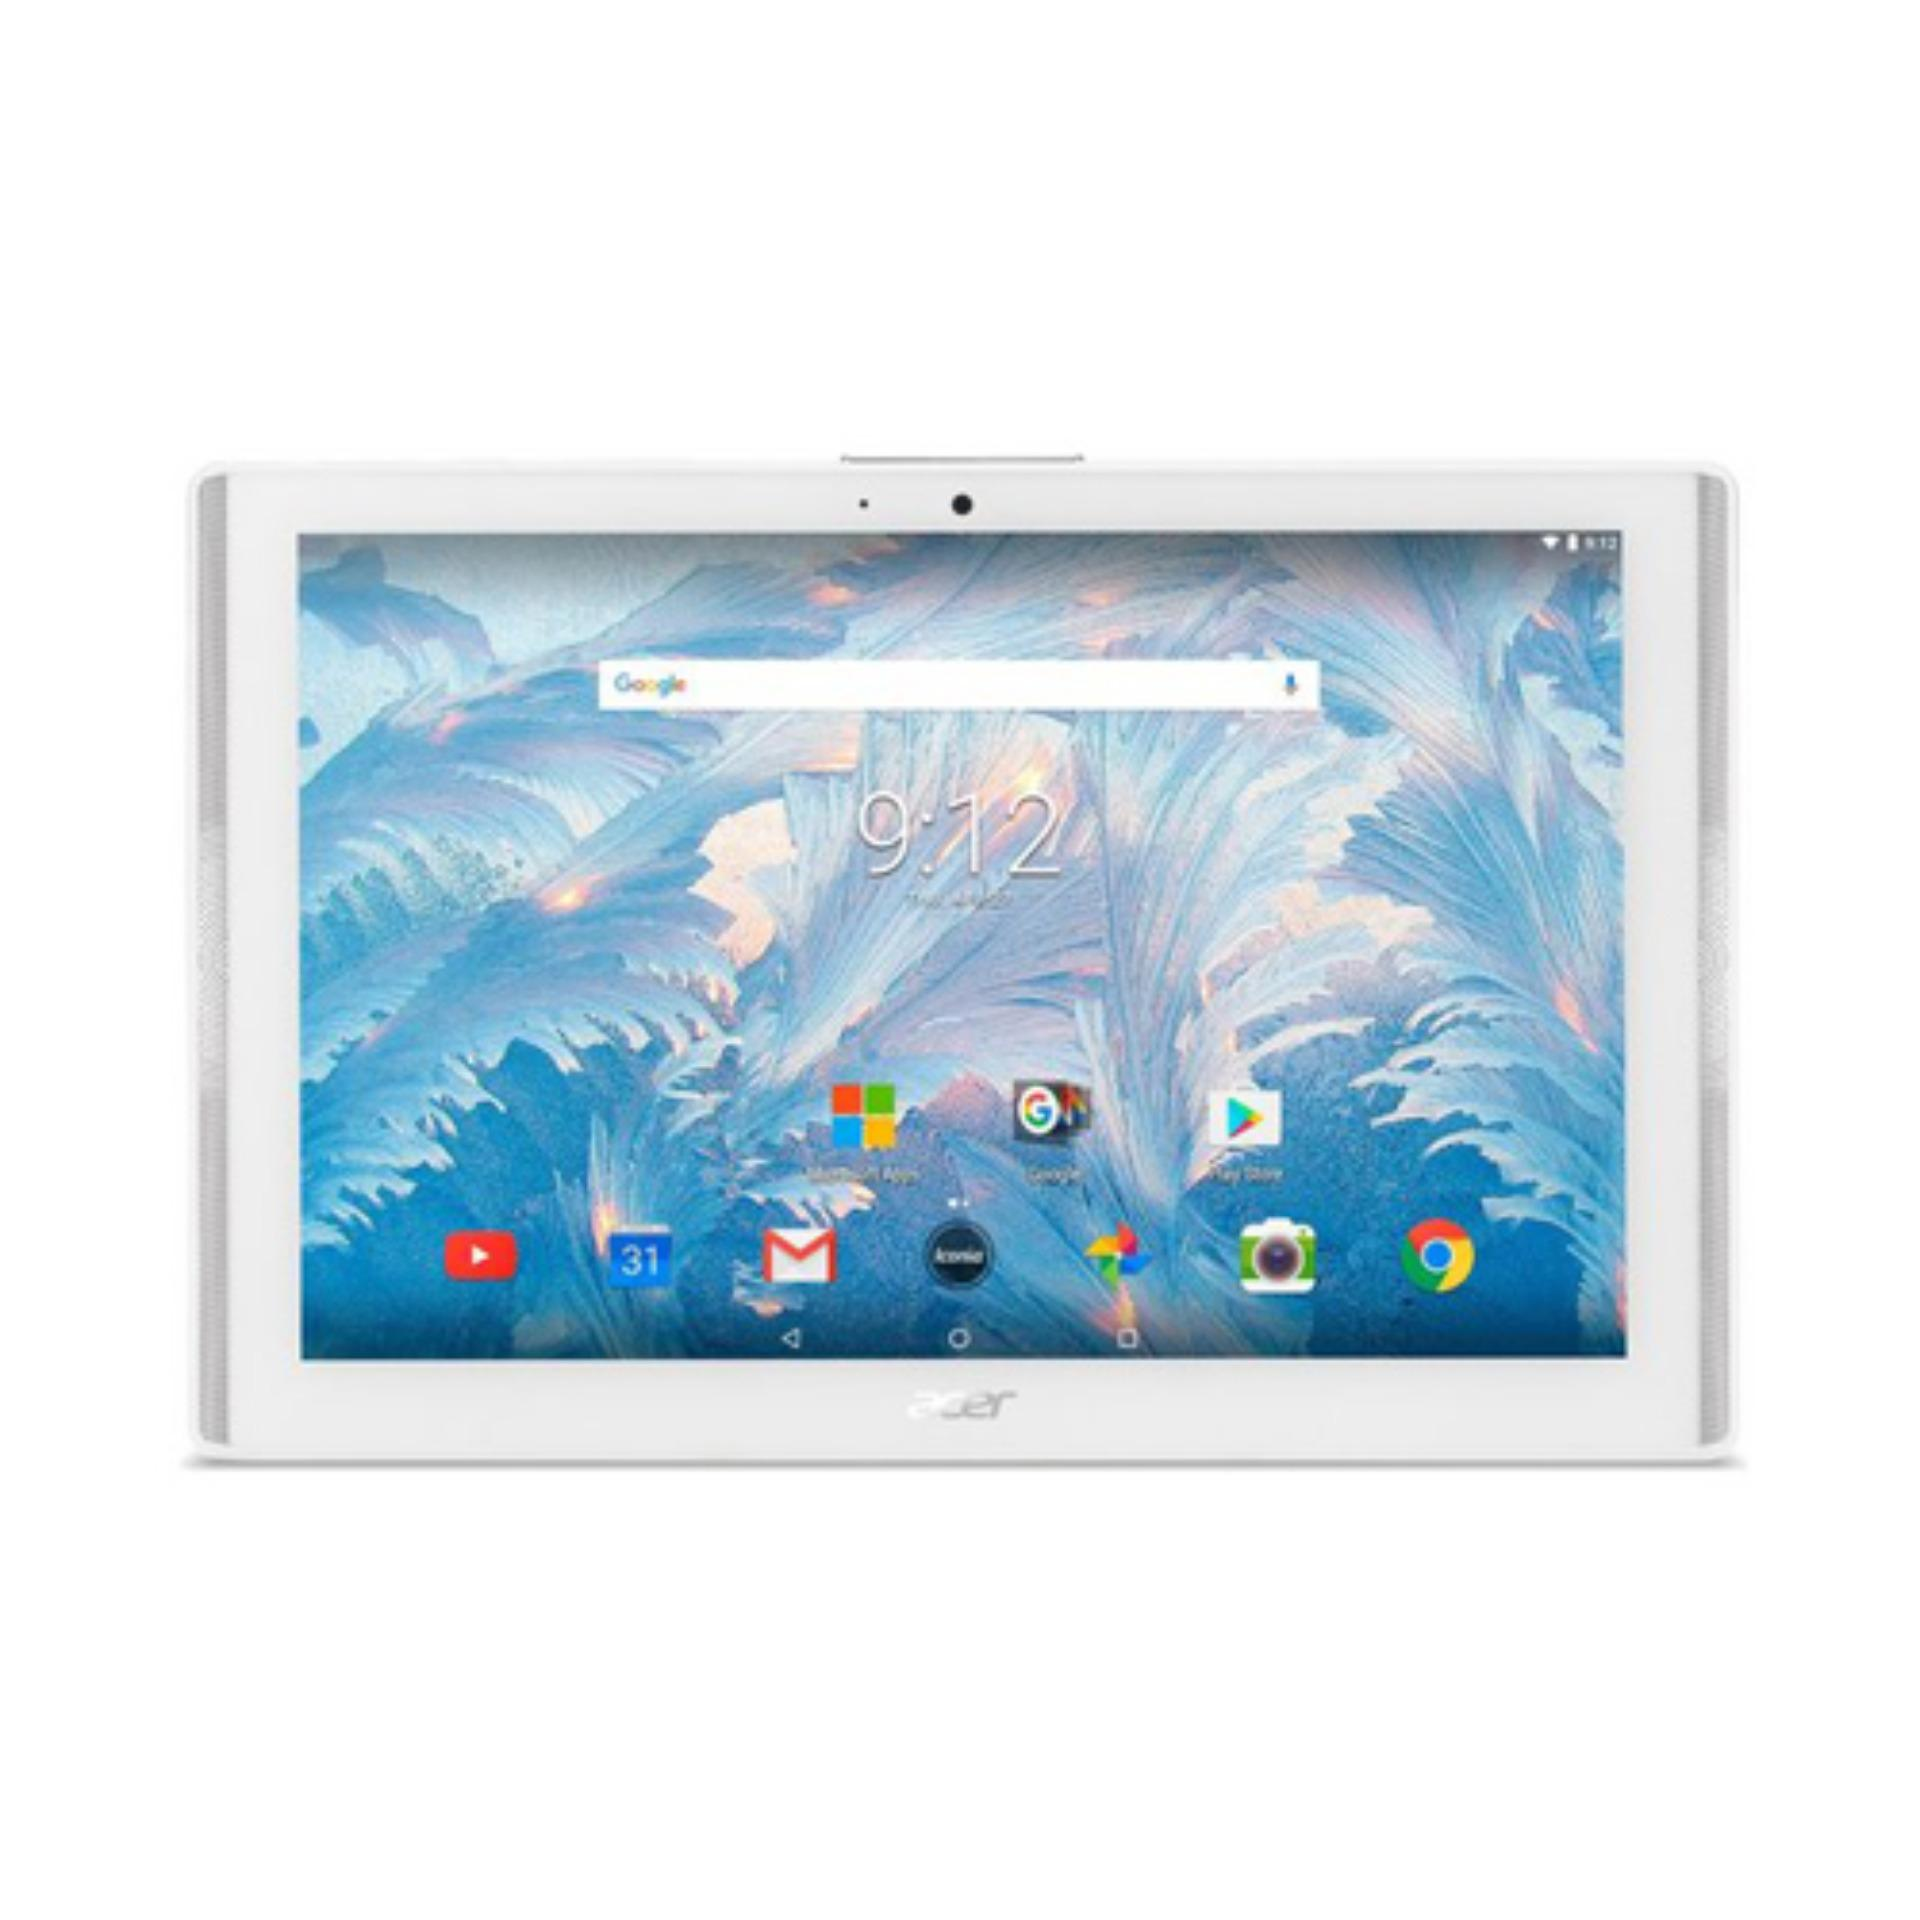 97b6e18c1f42b Acer Tablet Philippines - Acer Mobile Tablet for sale - prices ...